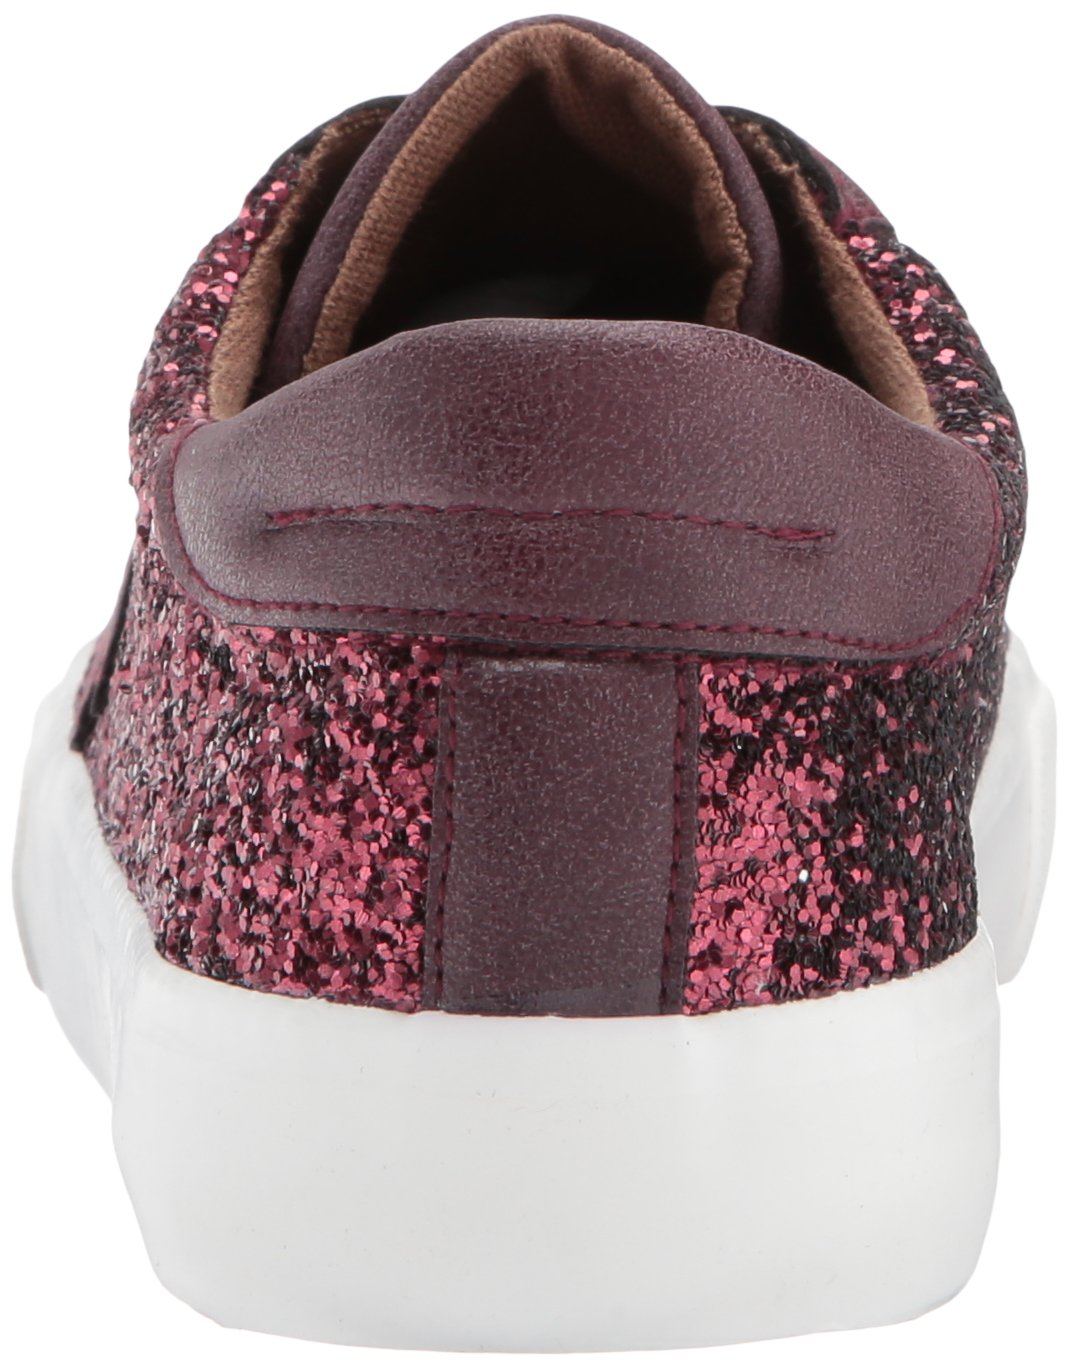 Not Rated Women's Illana Fashion Sneaker B06Y5MWVP2 7 B(M) US|Burgundy